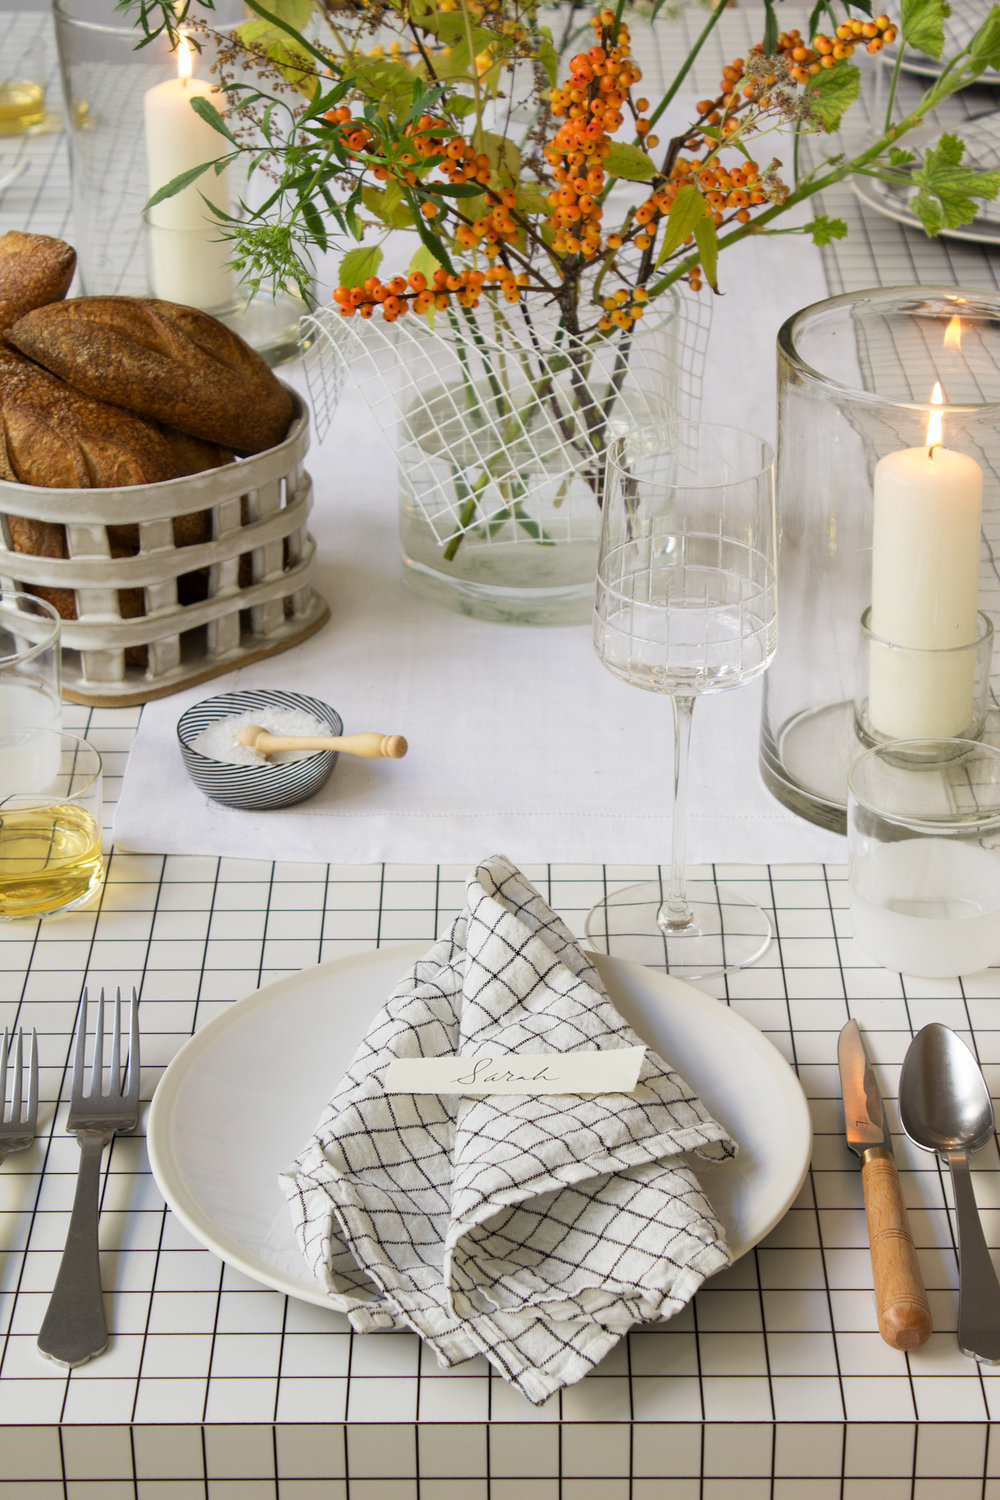 modern-thanksgiving-table-setting-grids-orange-flowers-black-white-david-stark.jpg